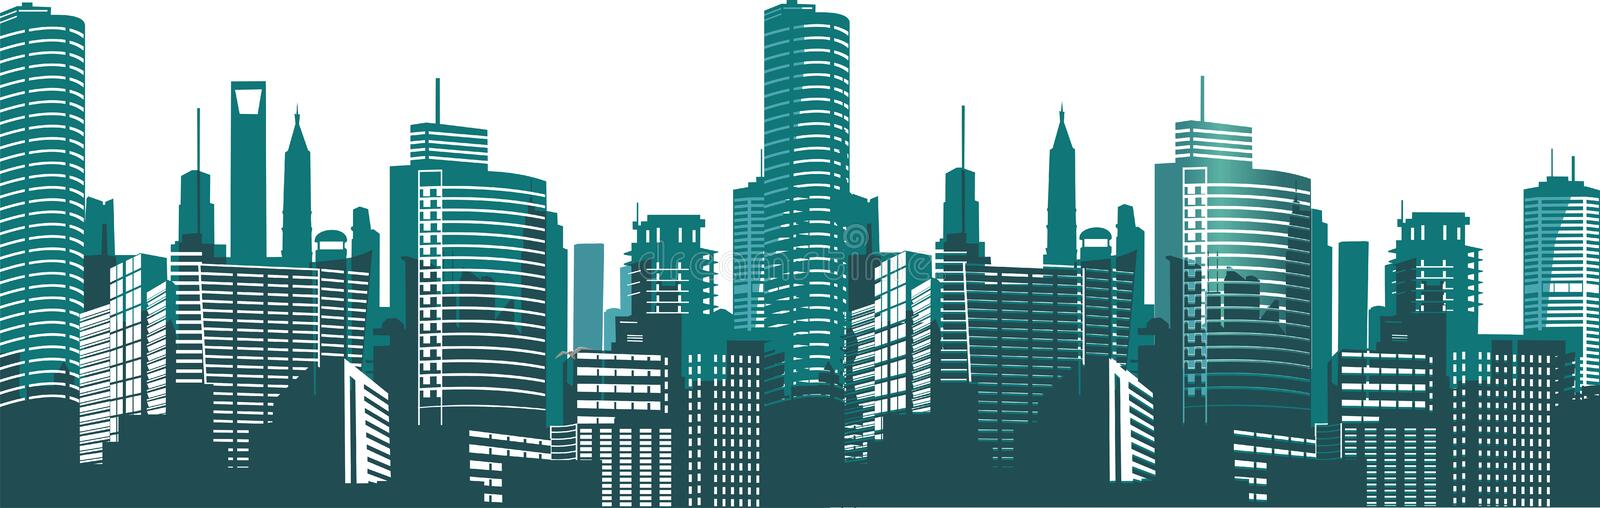 Silhouettes of houses of the city at night. Panorama of the metropolis. Illustration on white background royalty free illustration